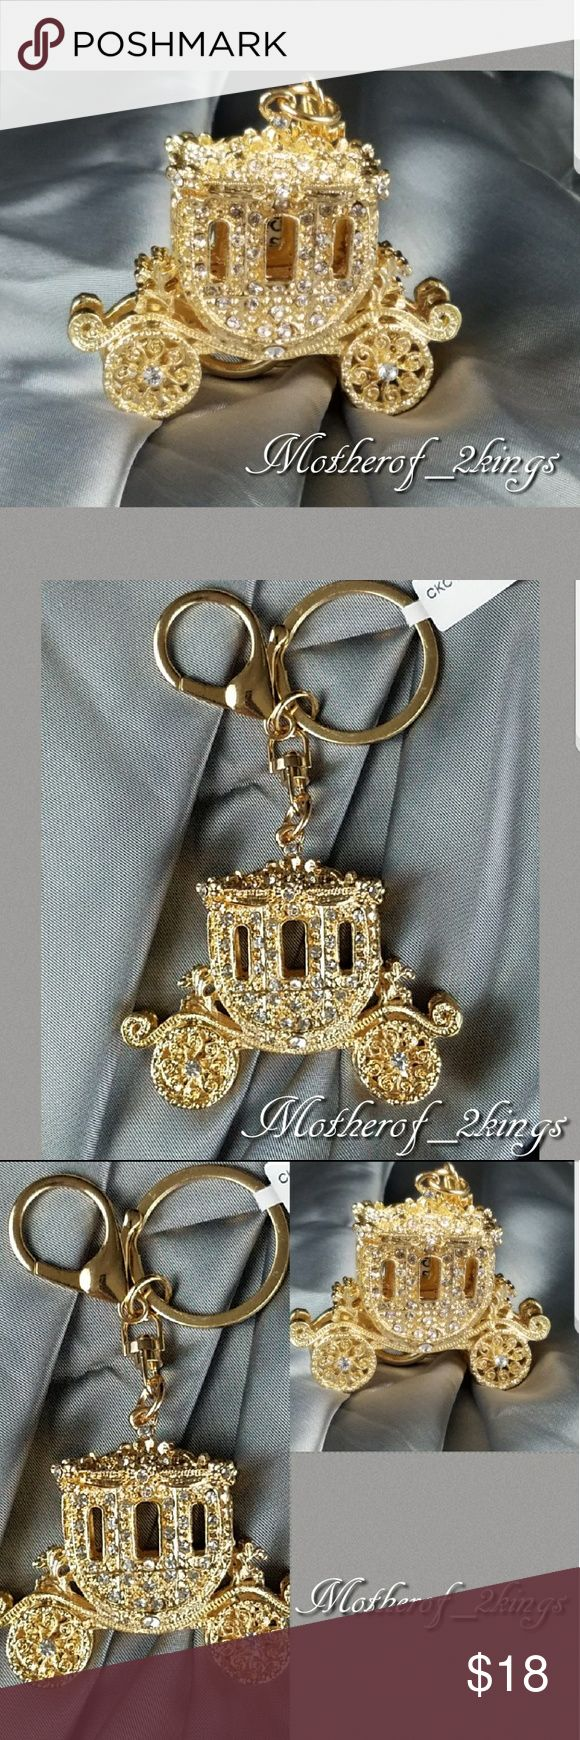 "🍁NEW🍁 GOLD/CRYSTAL ""CARRIAGE"" KEYCHAIN/CHARM 💎Give your ""Little Princess"" her very own CARRIAGE! 😍 Give your Keys or favorite Handbag a POP of personality! This Keychain can also be used as a  STUNNING Charm for your Handbag!  👜😍  It is absolutely GORGEOUS!  If you love SPARKLE this is for YOU!! 😍💎💍   *Includes Keyring to hold your keys and Lobster Clasp to use as a Charm for your Handbag!  😍  🎄🎁EXCELLENT Stocking Stuffer!🎁🎄  🛍 BUNDLE TO SAVE MORE 🛍 Accessories Key & Card…"